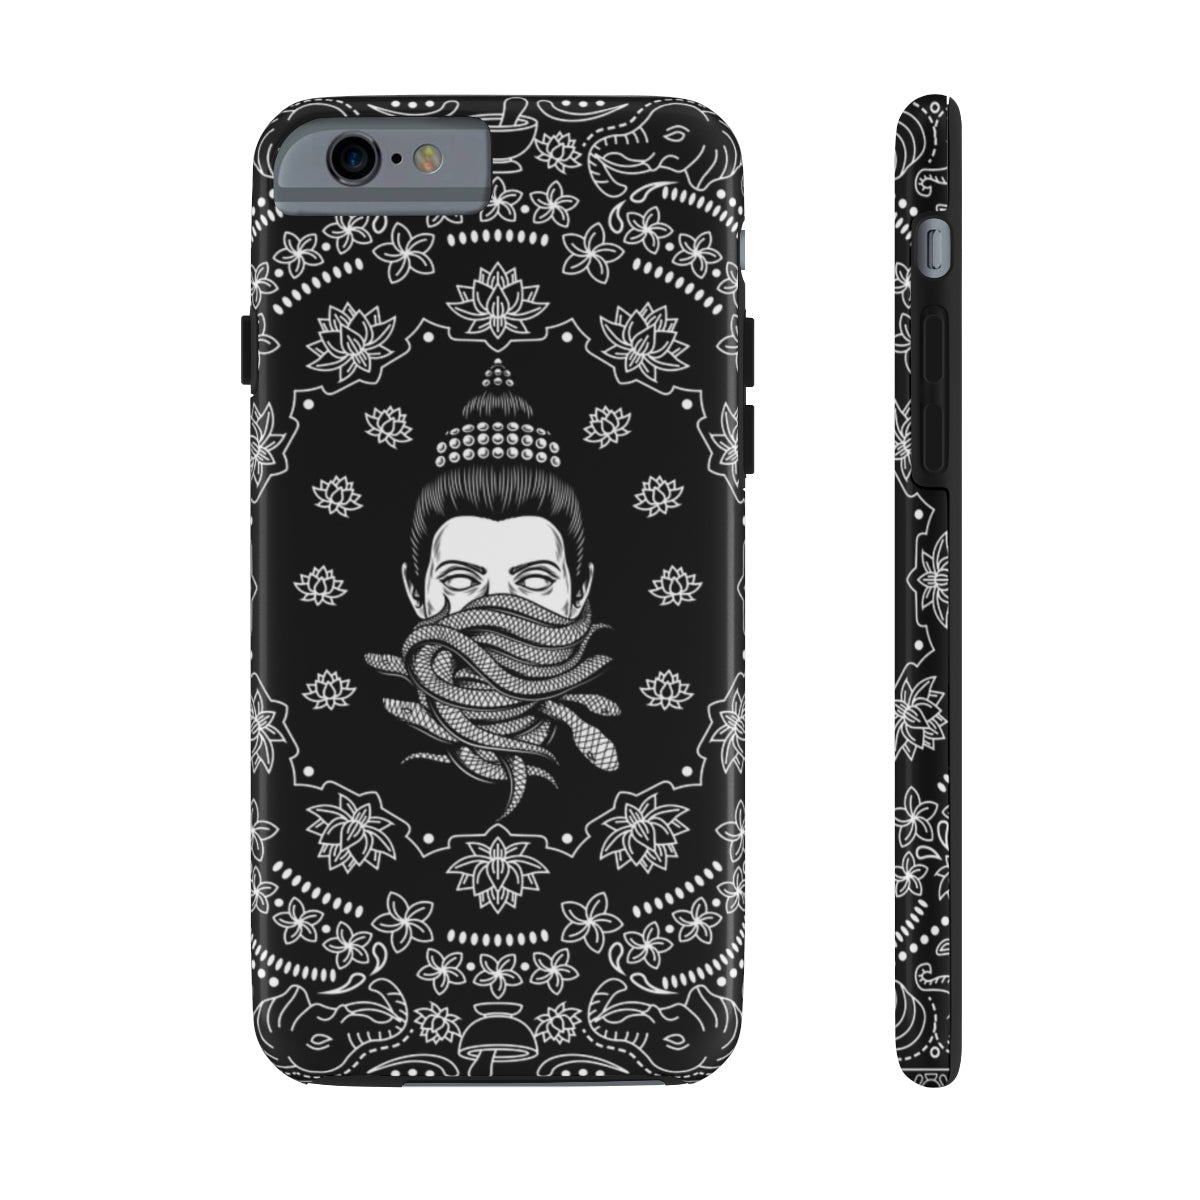 Sao Medusa Bandana Phone Cases